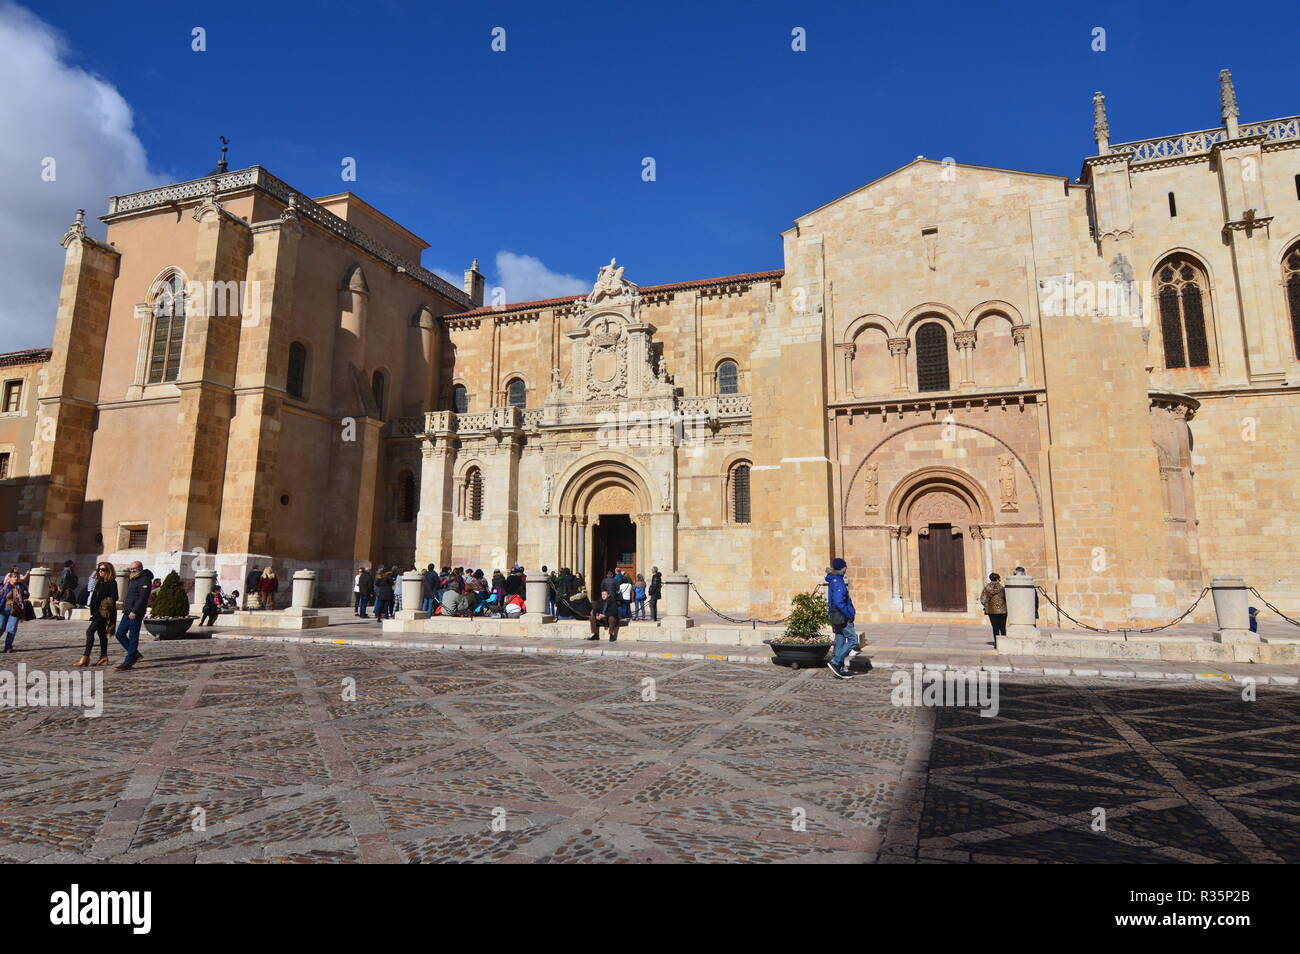 Main Facade Of The Basilica Of San Isidoro In Leon. Architecture, Travel, History, Street Photography. November 2, 2018. Leon Castilla y Leon Spain. Stock Photo